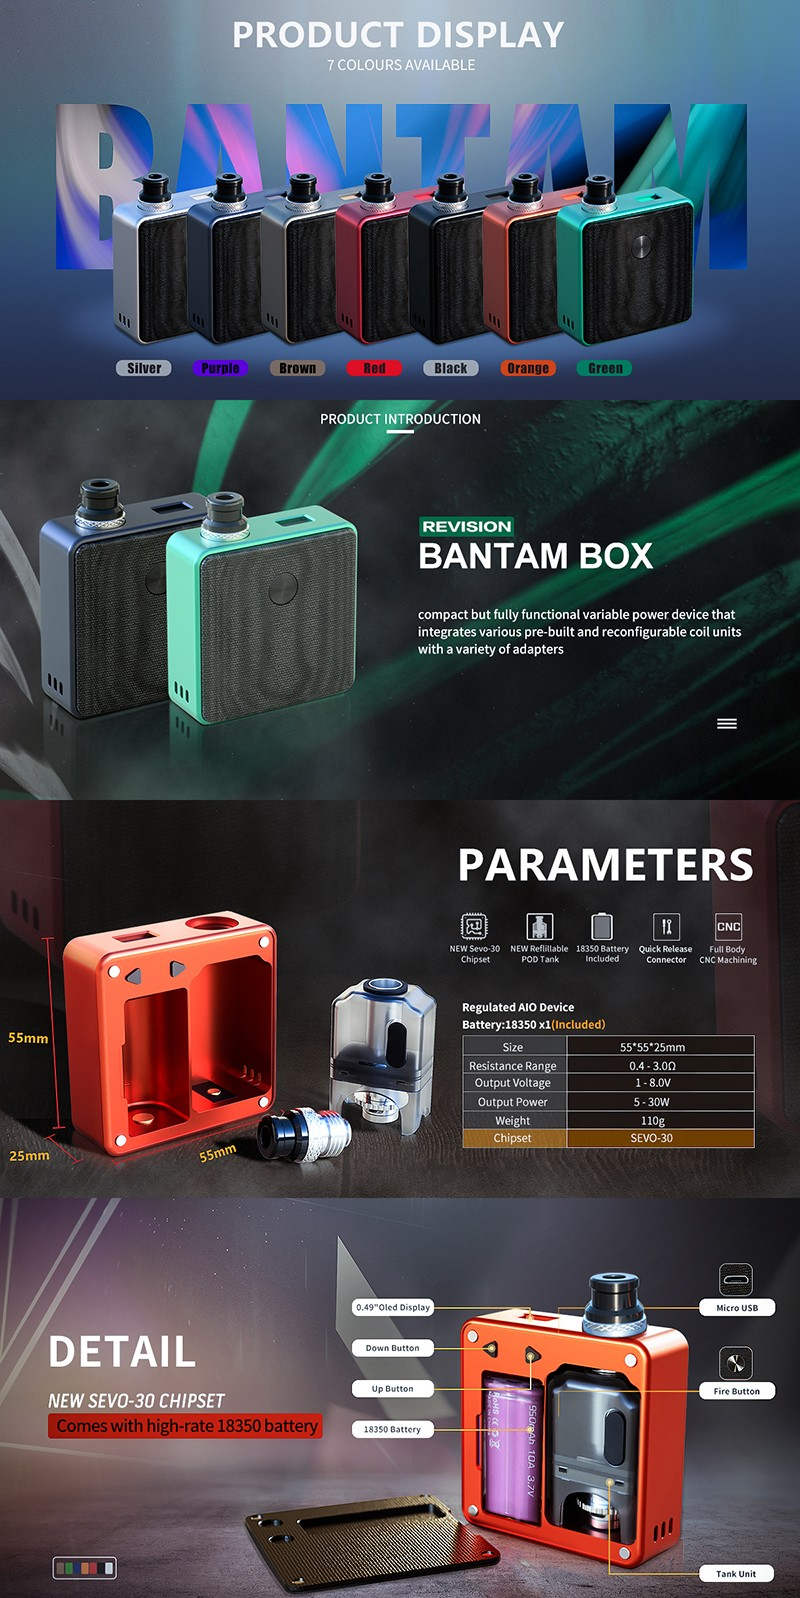 [Ships from Battery Warehouse] Authentic SXK Bantam Revision 30W VW Box Vape Mod Kit w/ 18350 Battery